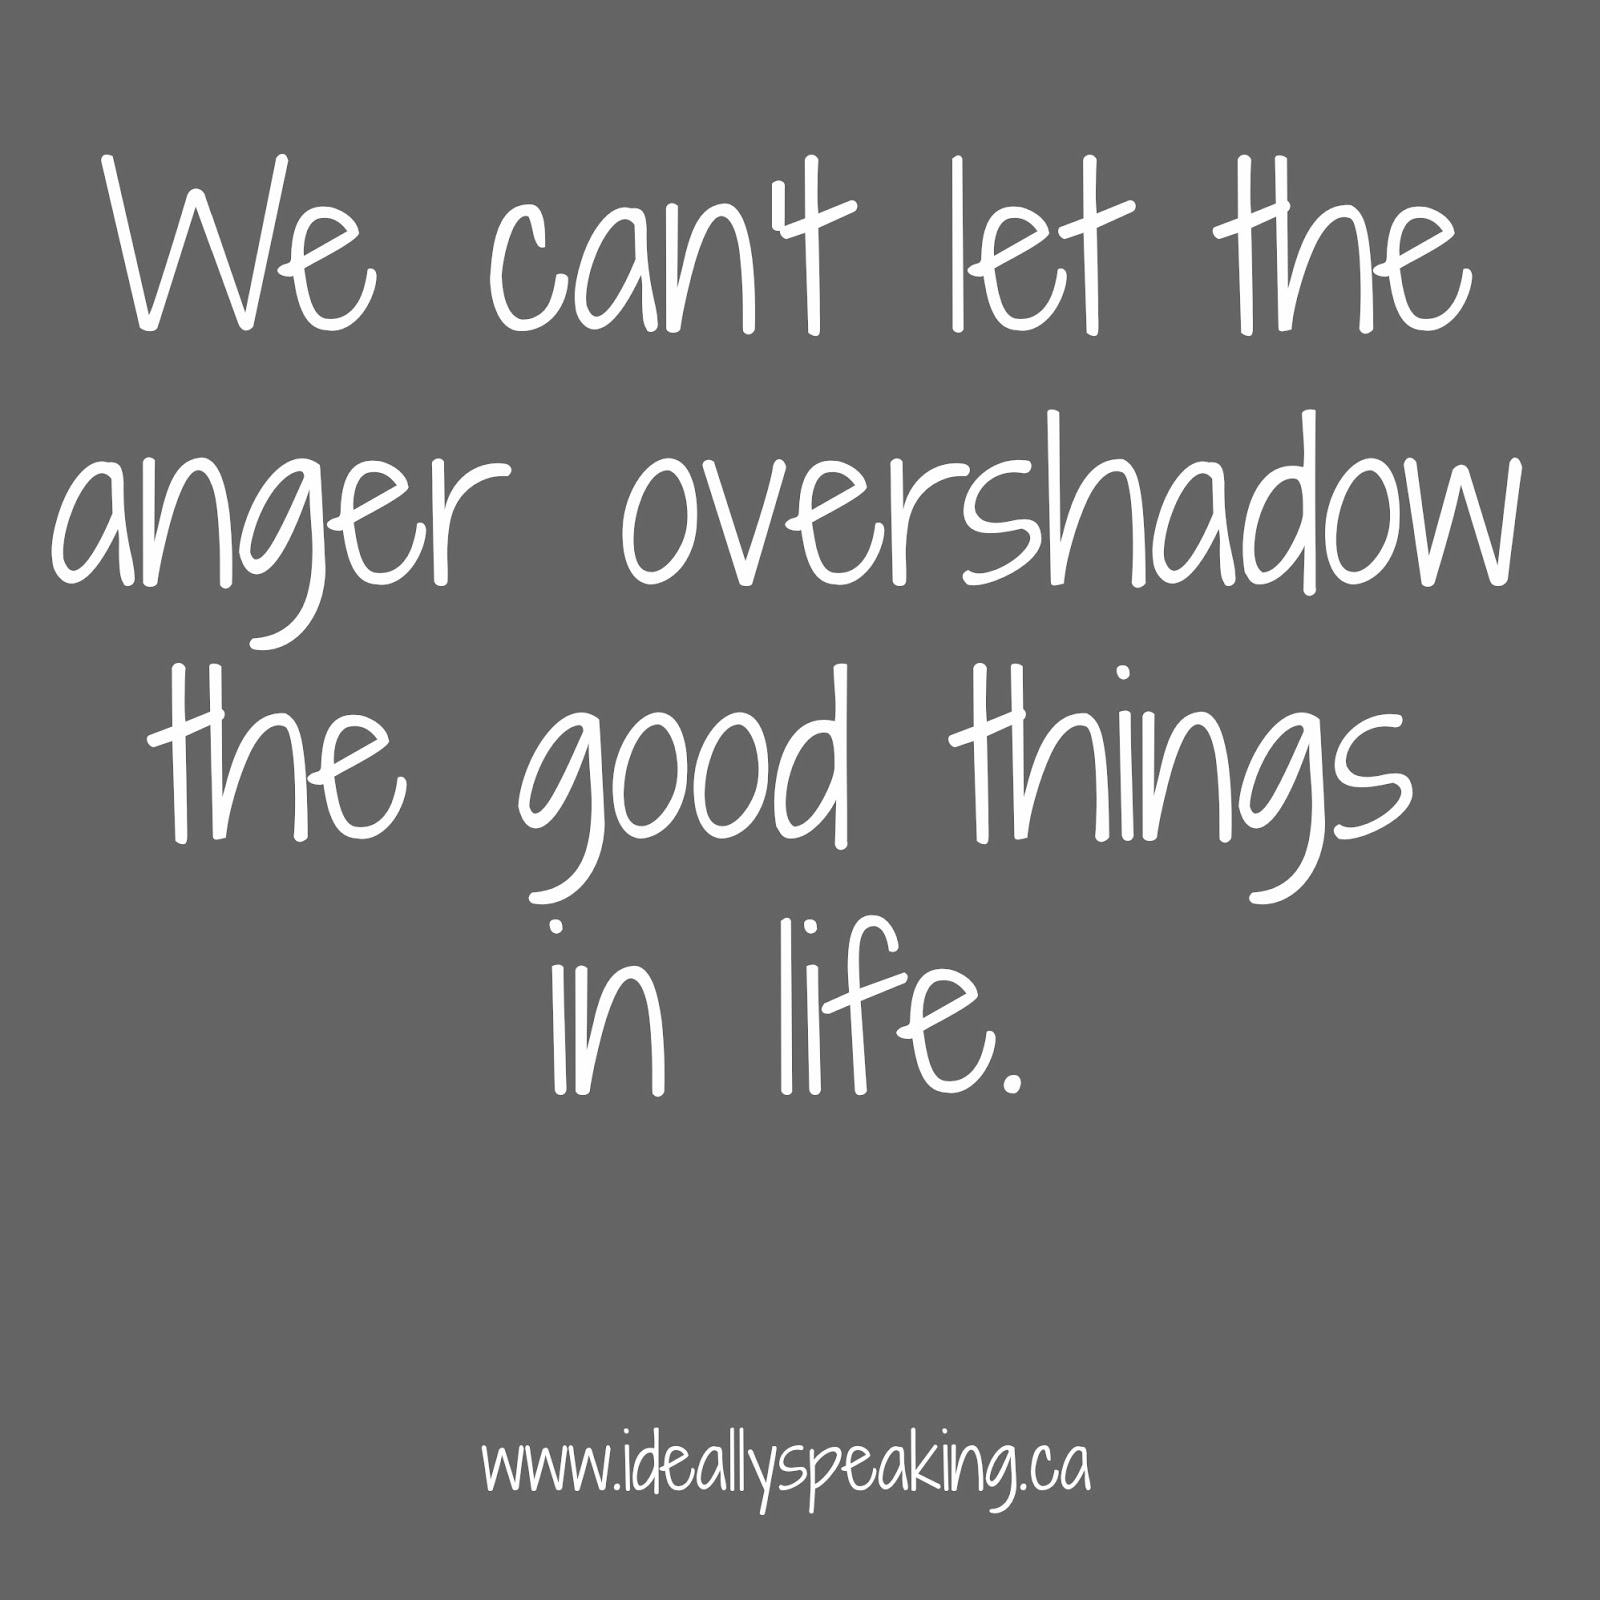 Quotes About Anger And Rage: Positive Anger Quotes. QuotesGram